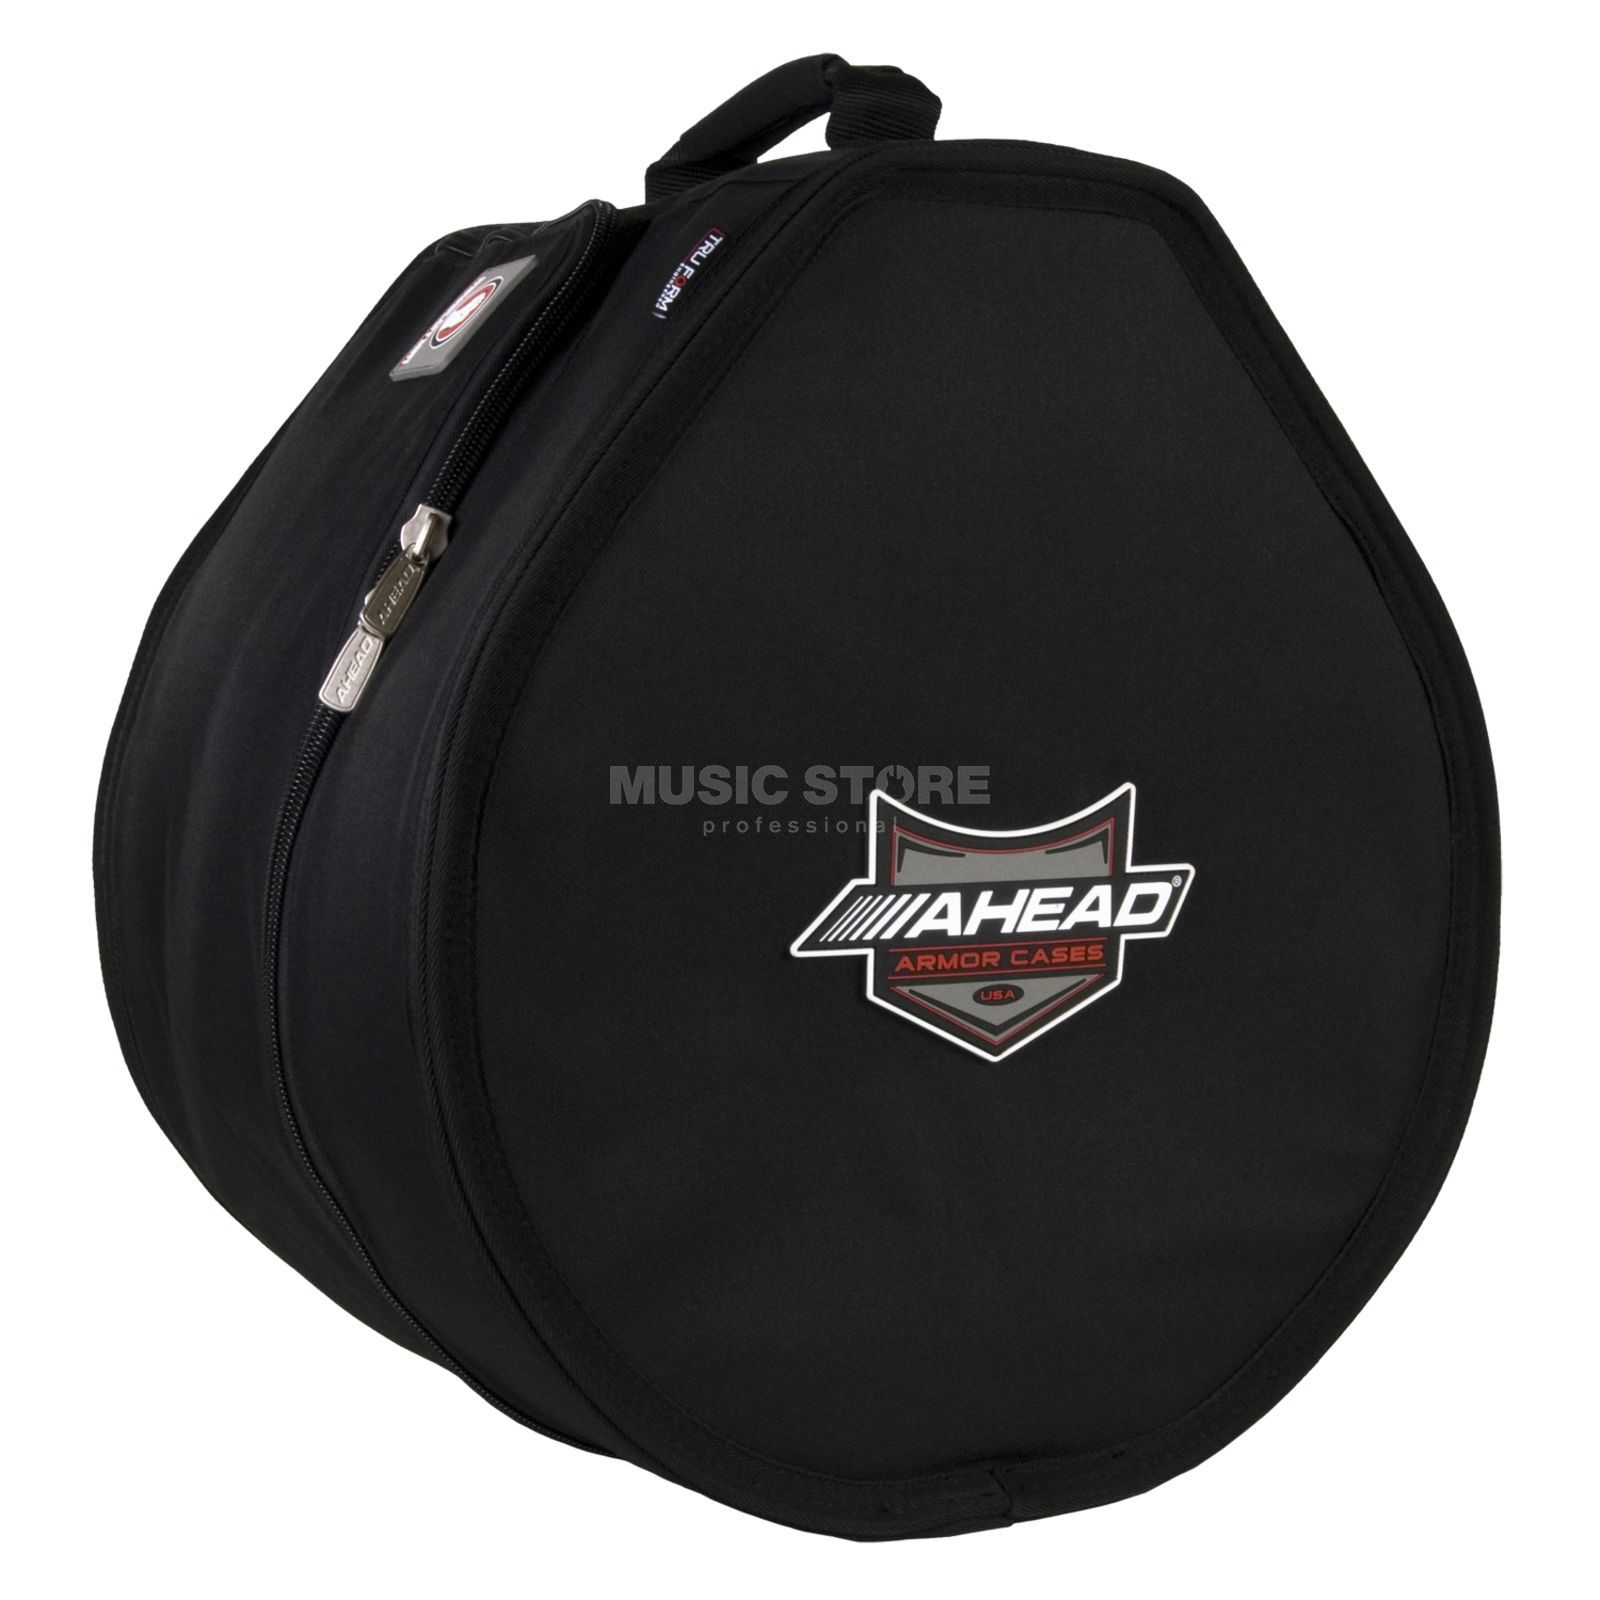 "Ahead Armor Cases Tom Bag 14""x10""  Product Image"